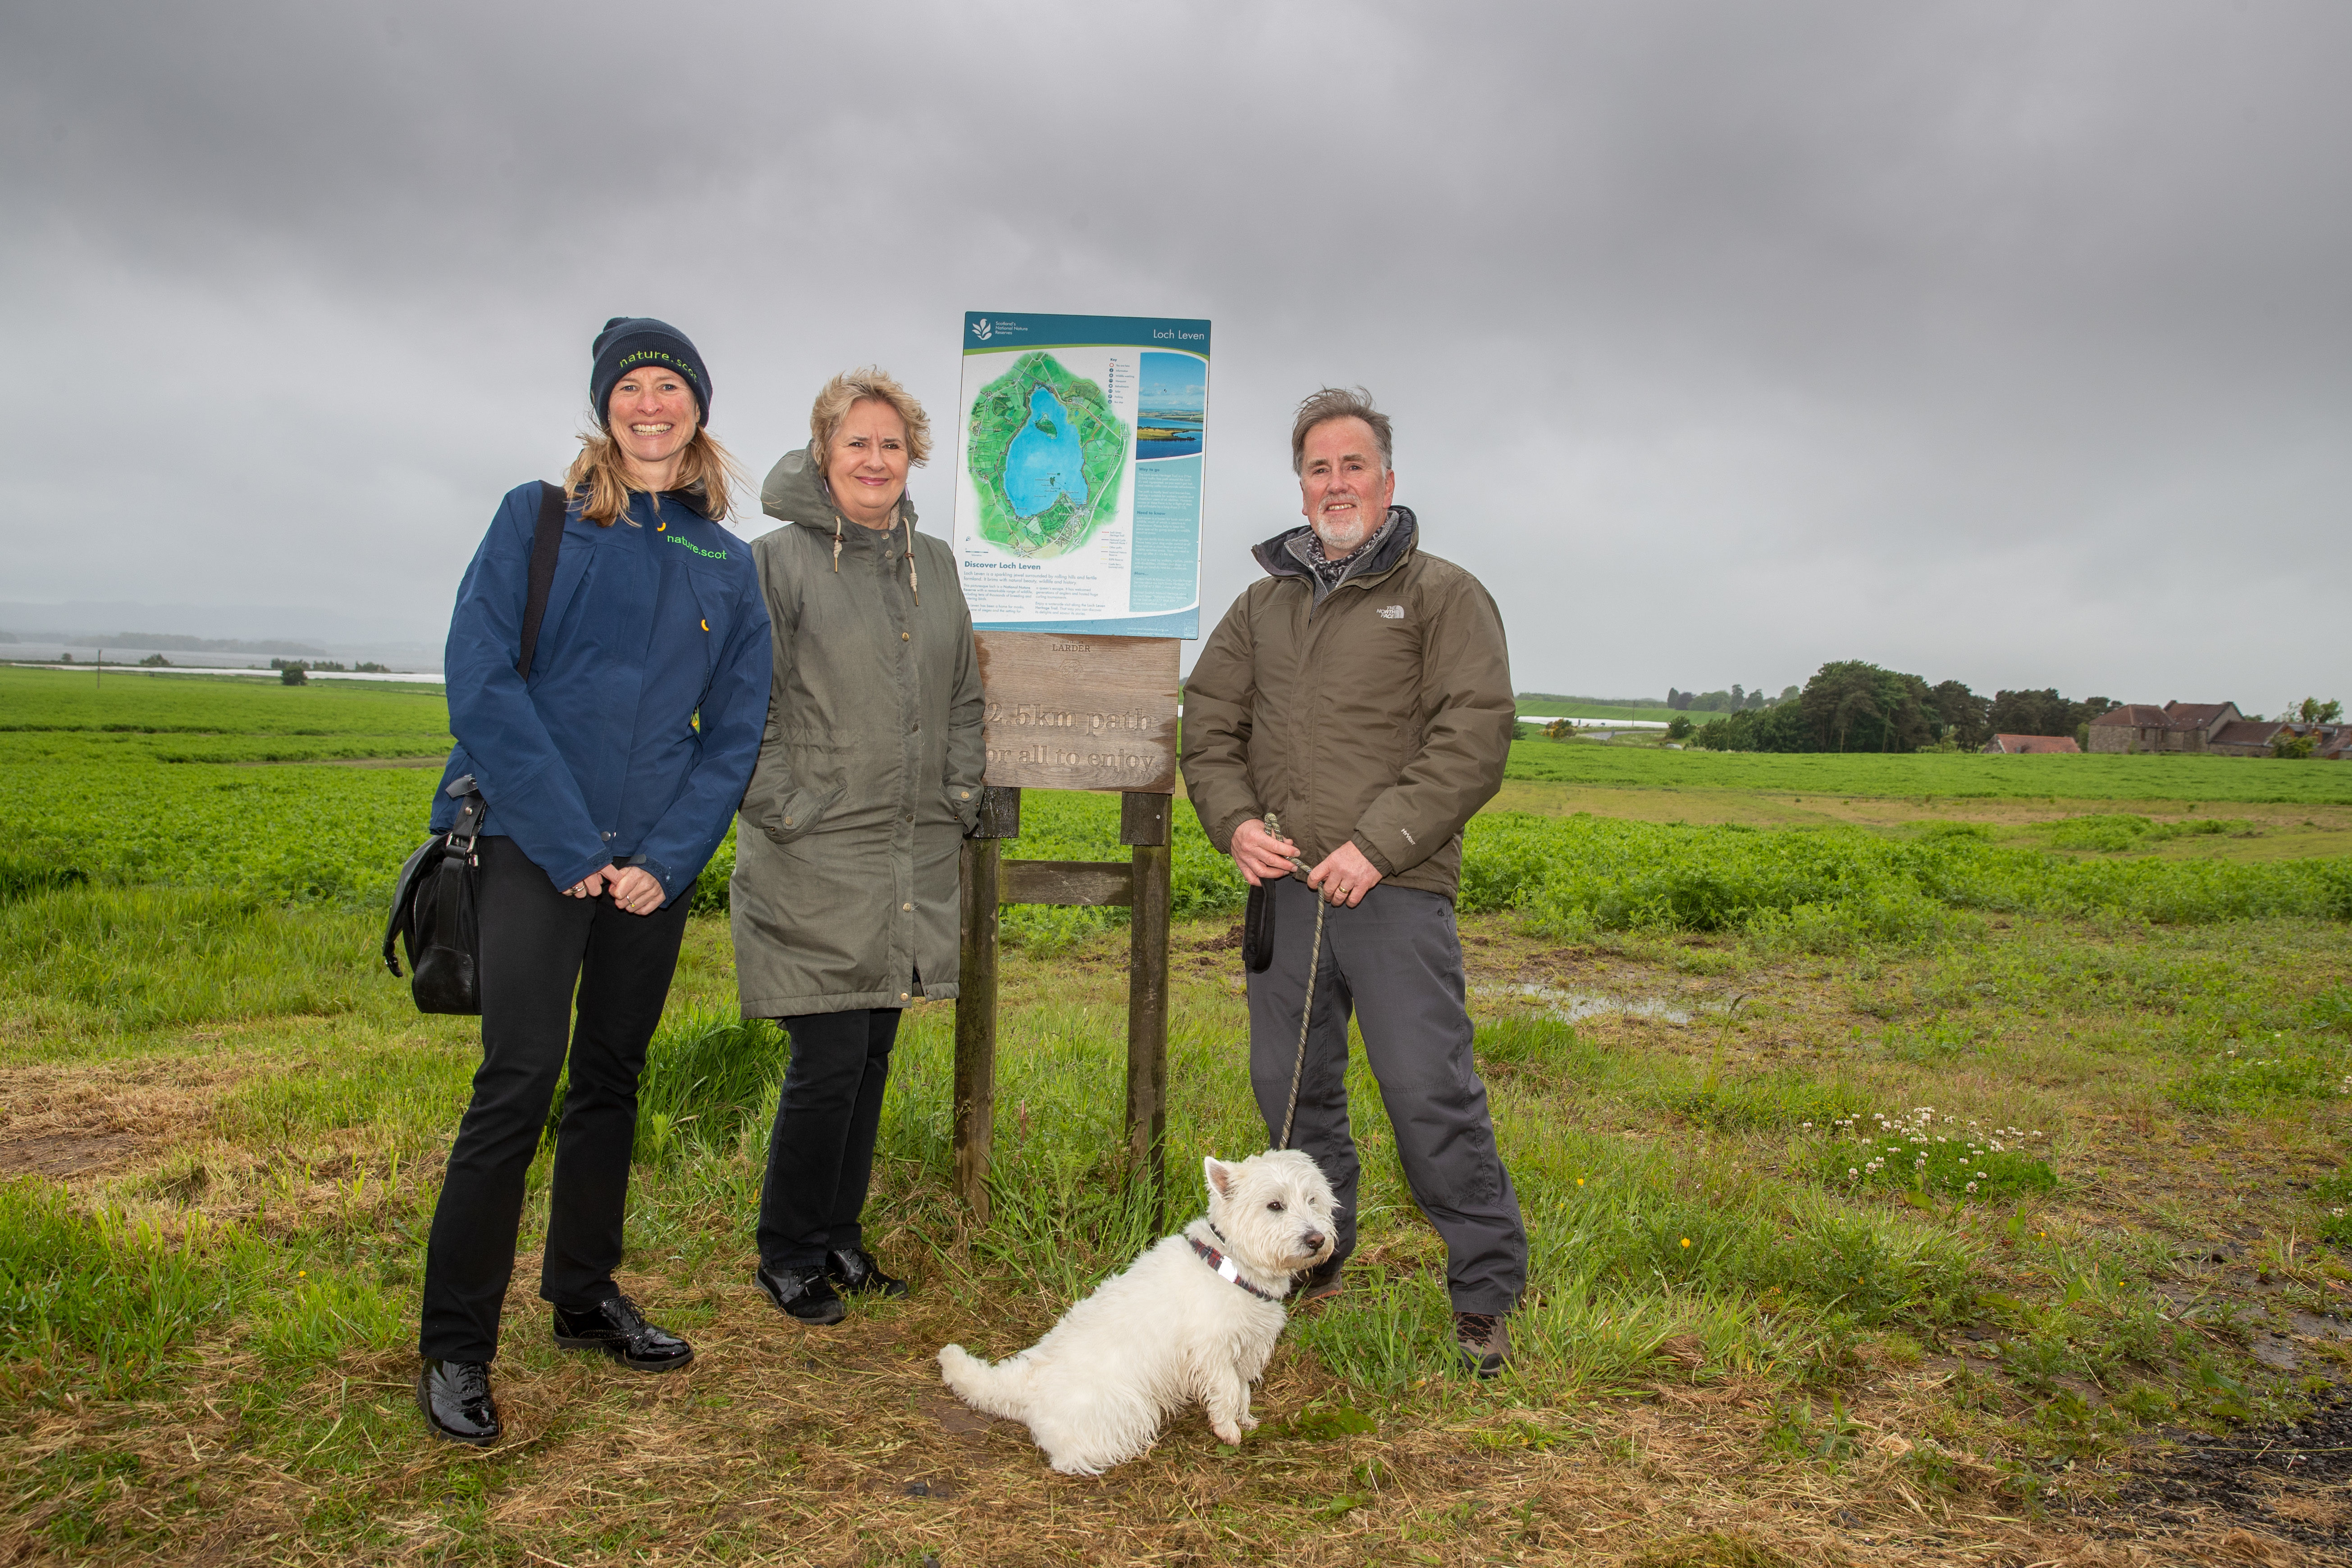 Roseanna Cunningham MSP, volunteer Dave Alston and his dog Murray and SNH Chief Executive Francesca Osowska were at Loch Leven, to mark the creation of more than 100 miles of new and improved paths across Scotland.